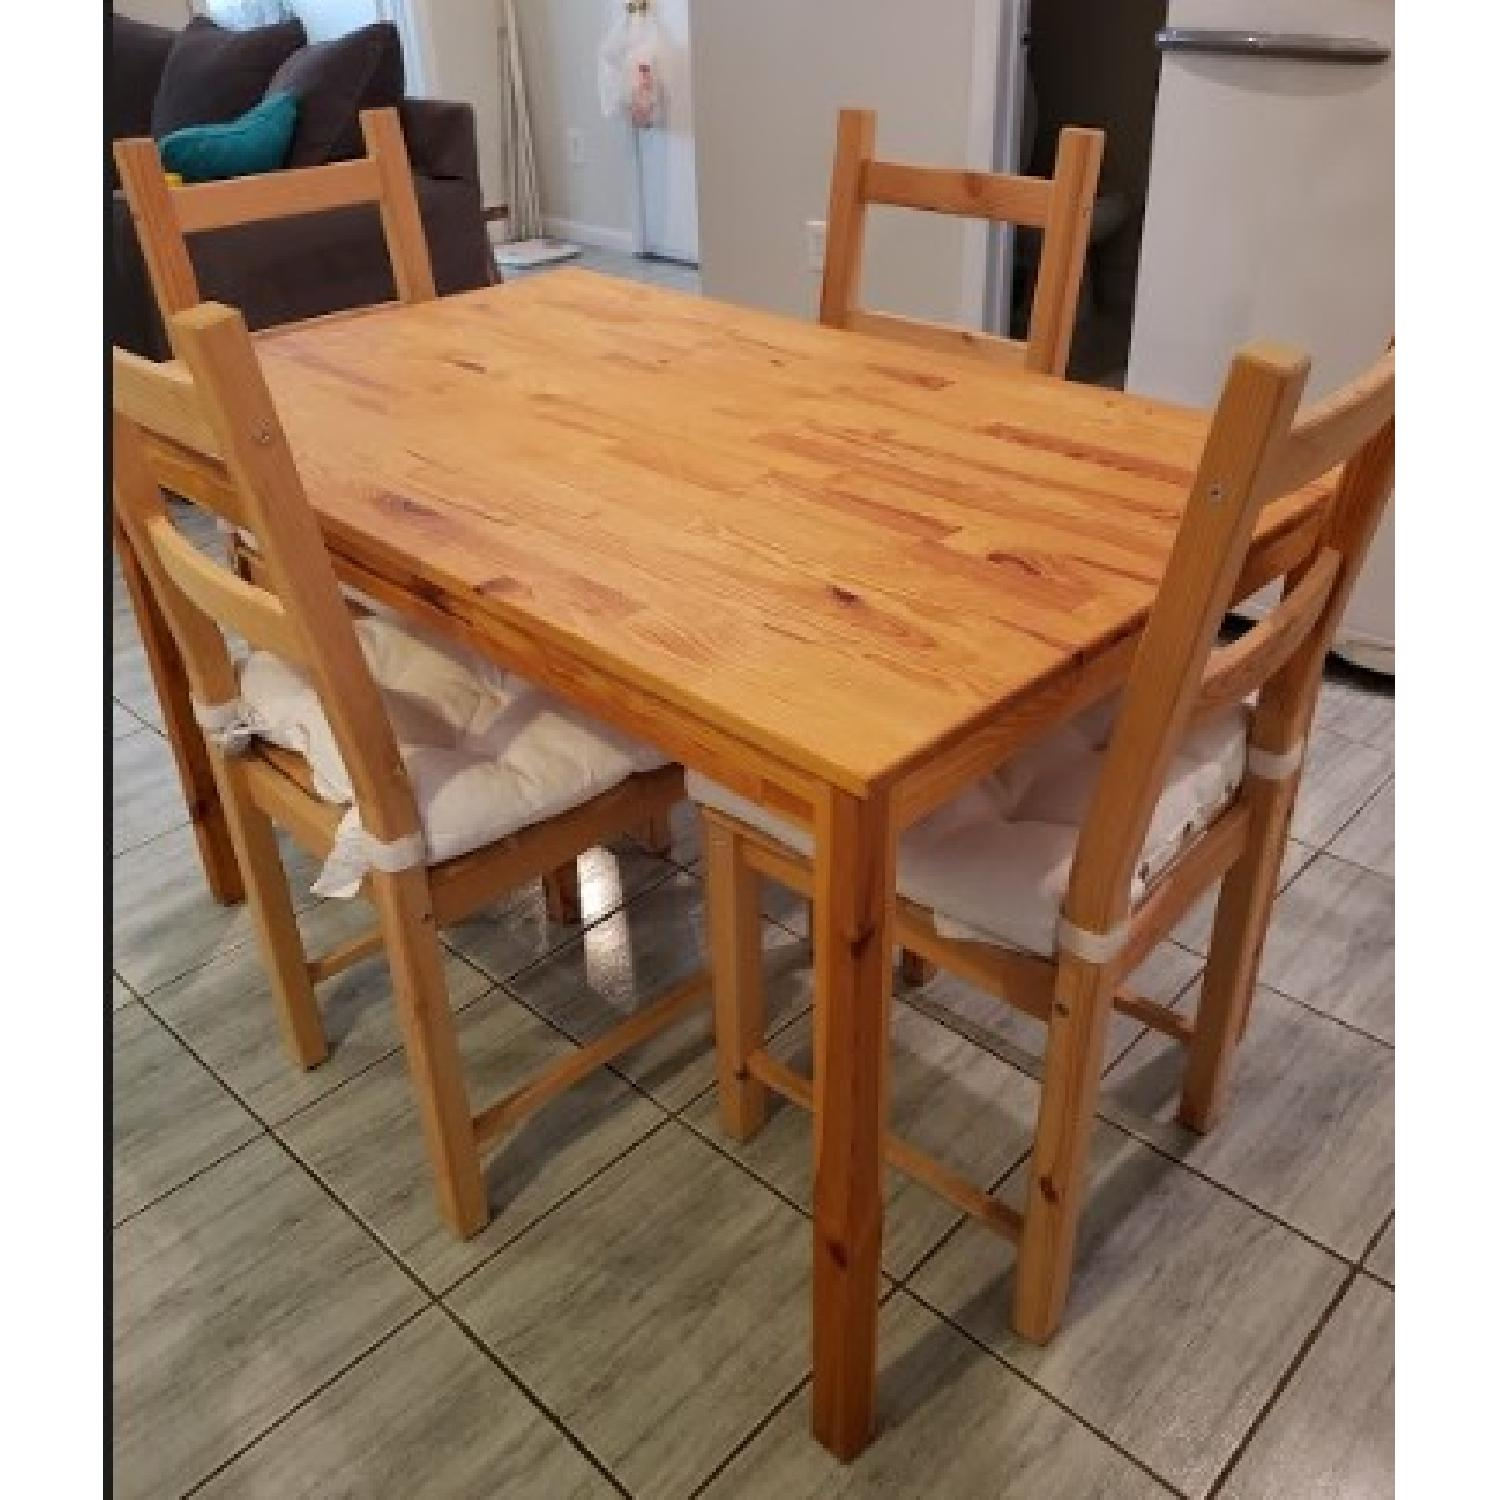 Ikea Ingo Natural Pinewood Dining Table w/ 4 Chairs - image-1